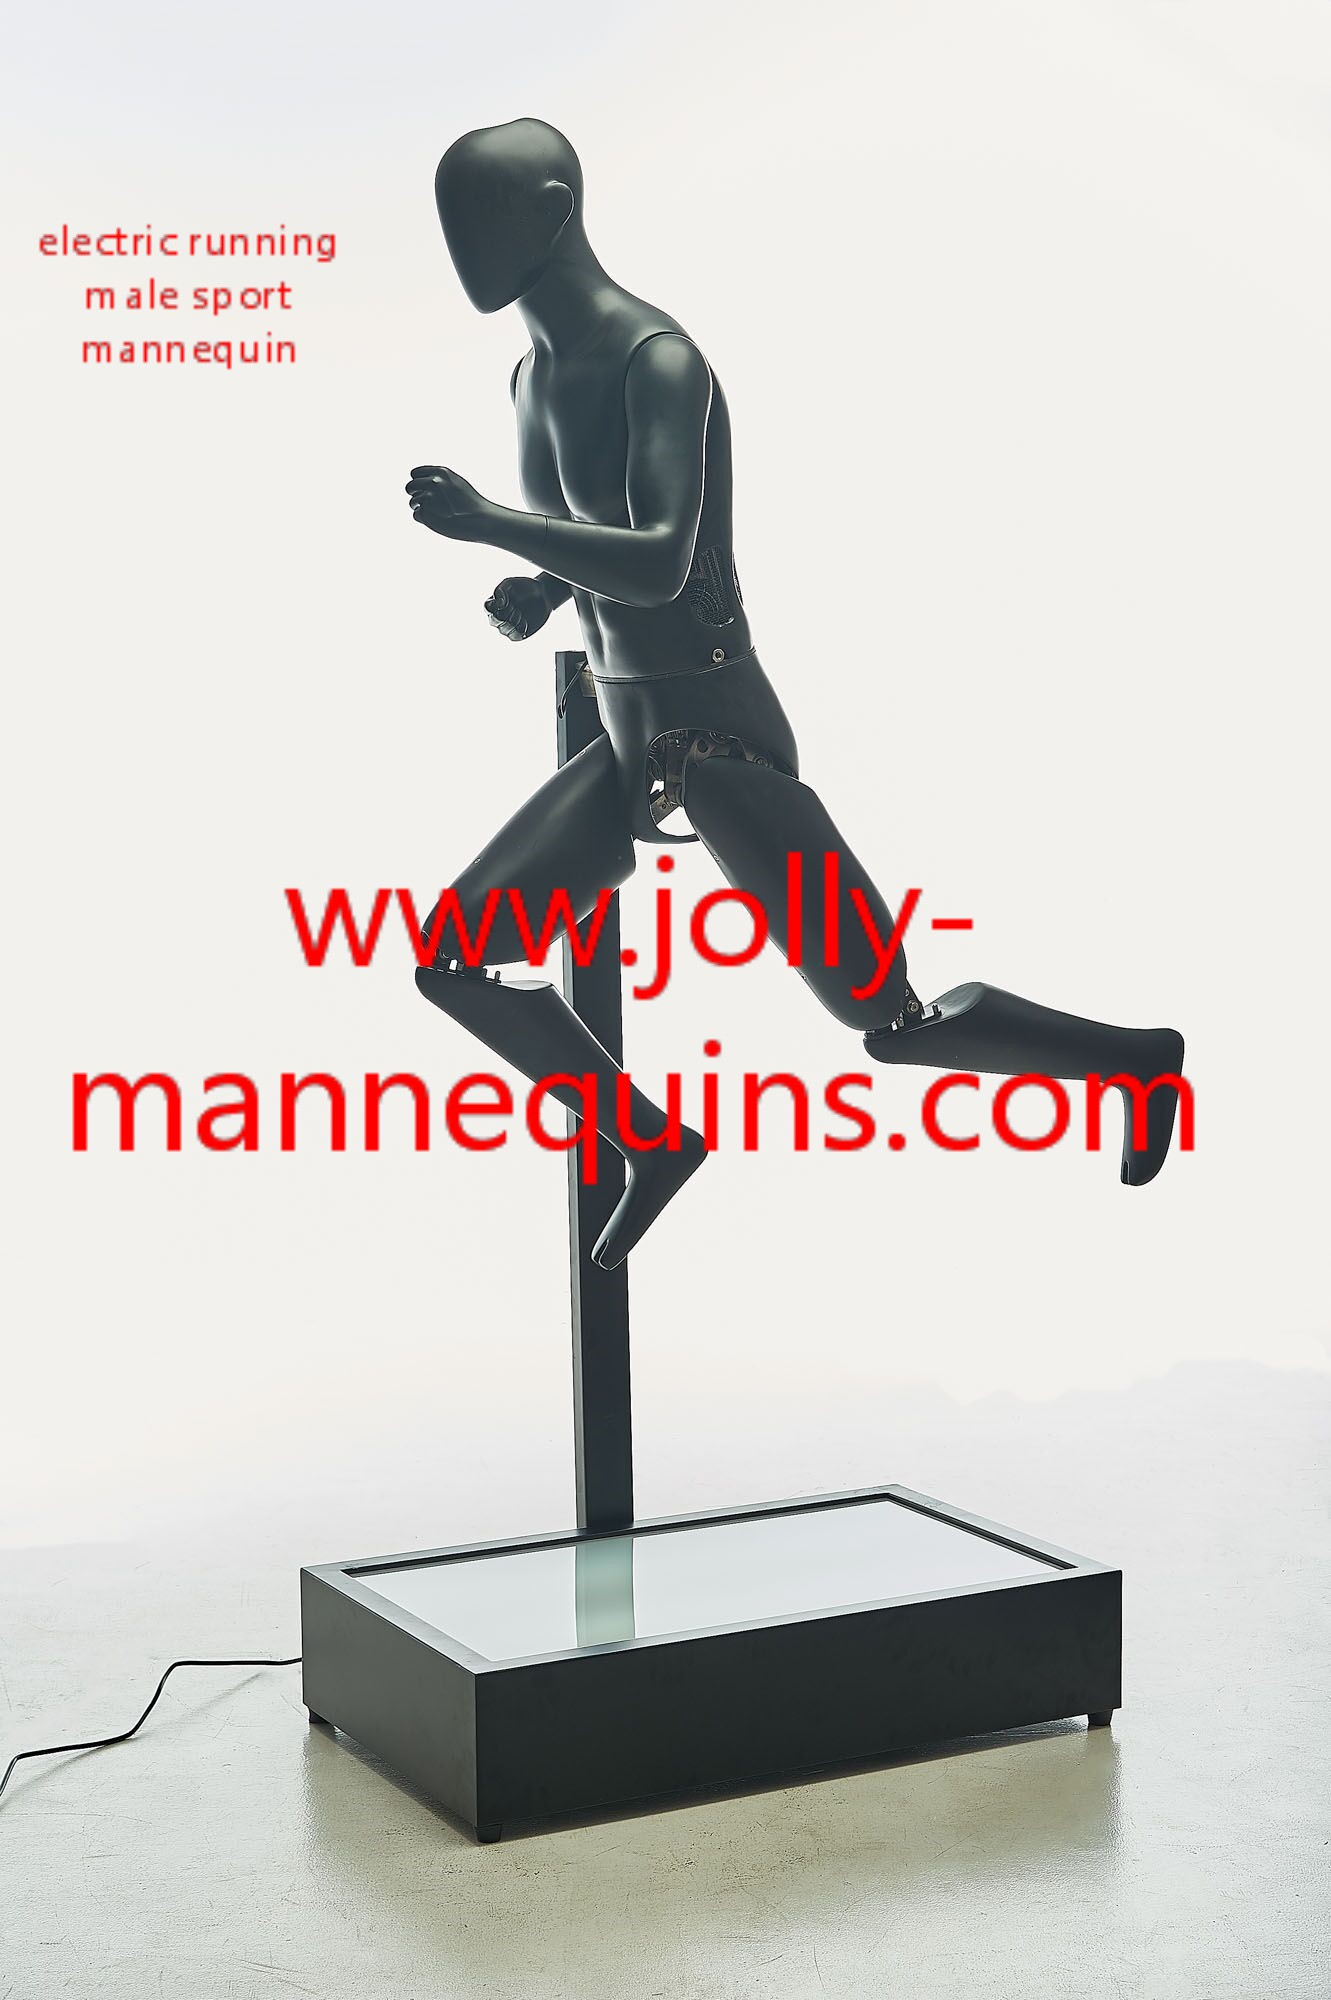 Jolly mannequins sport electri..